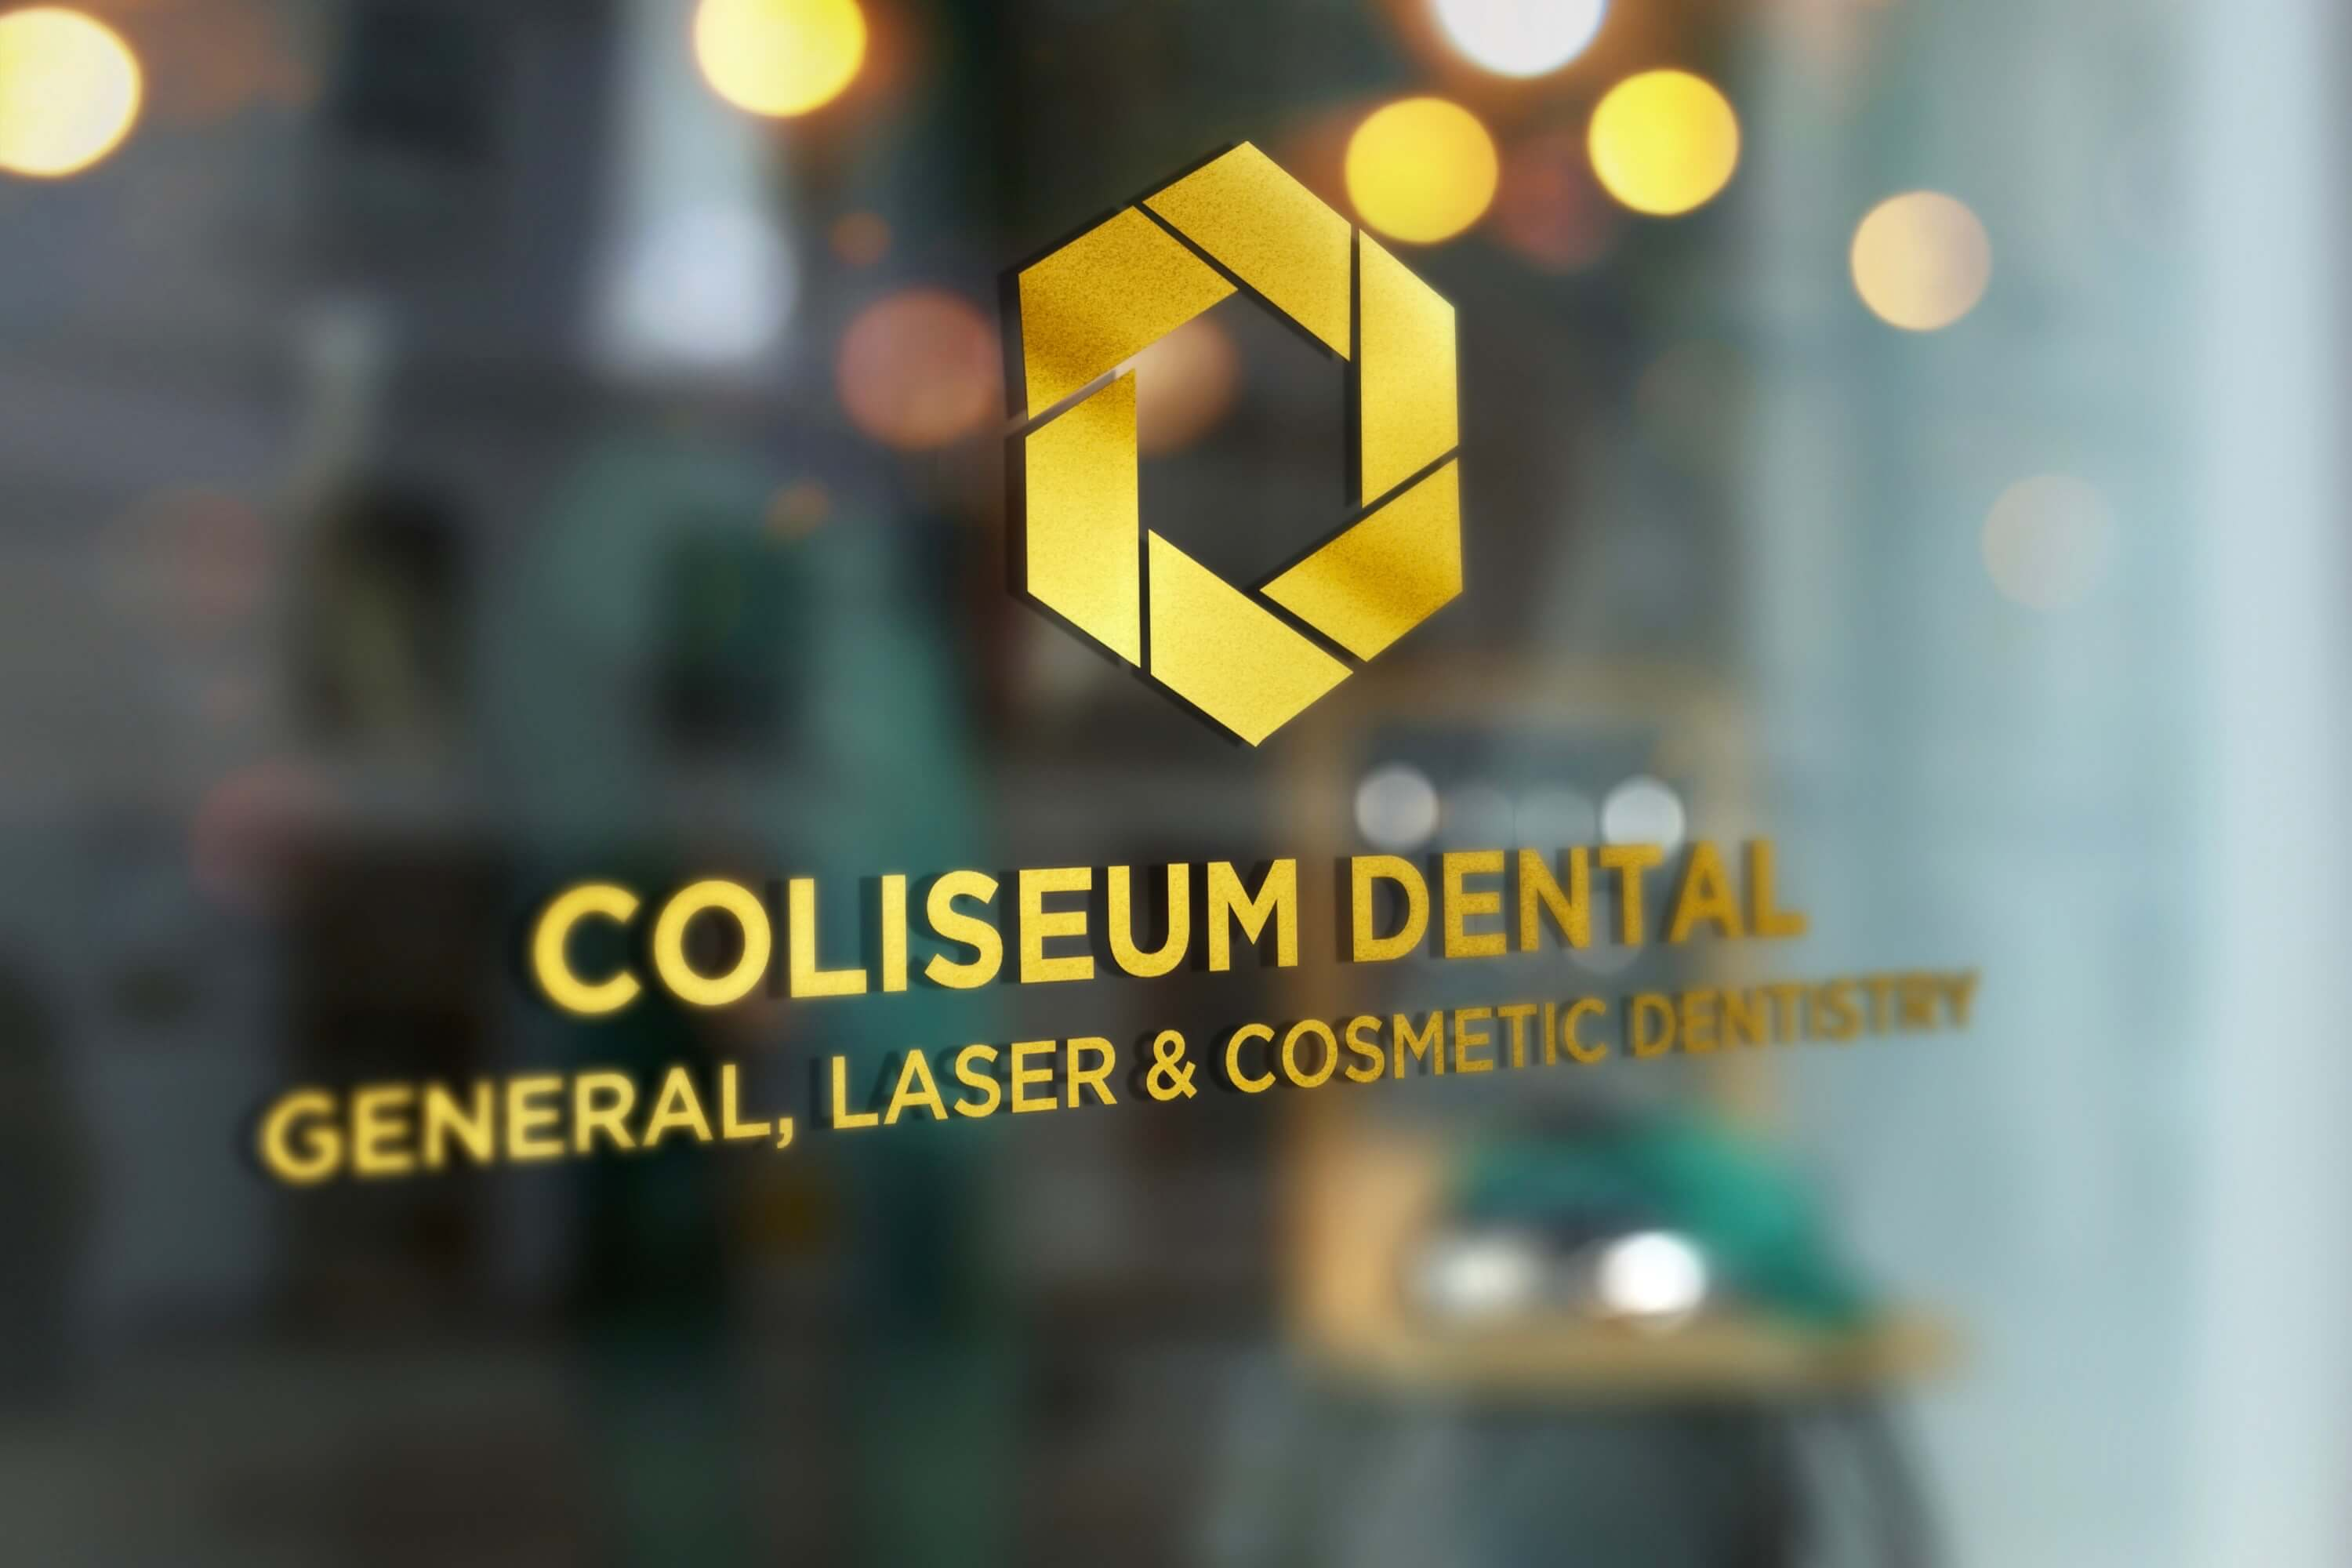 Coliseum Dental